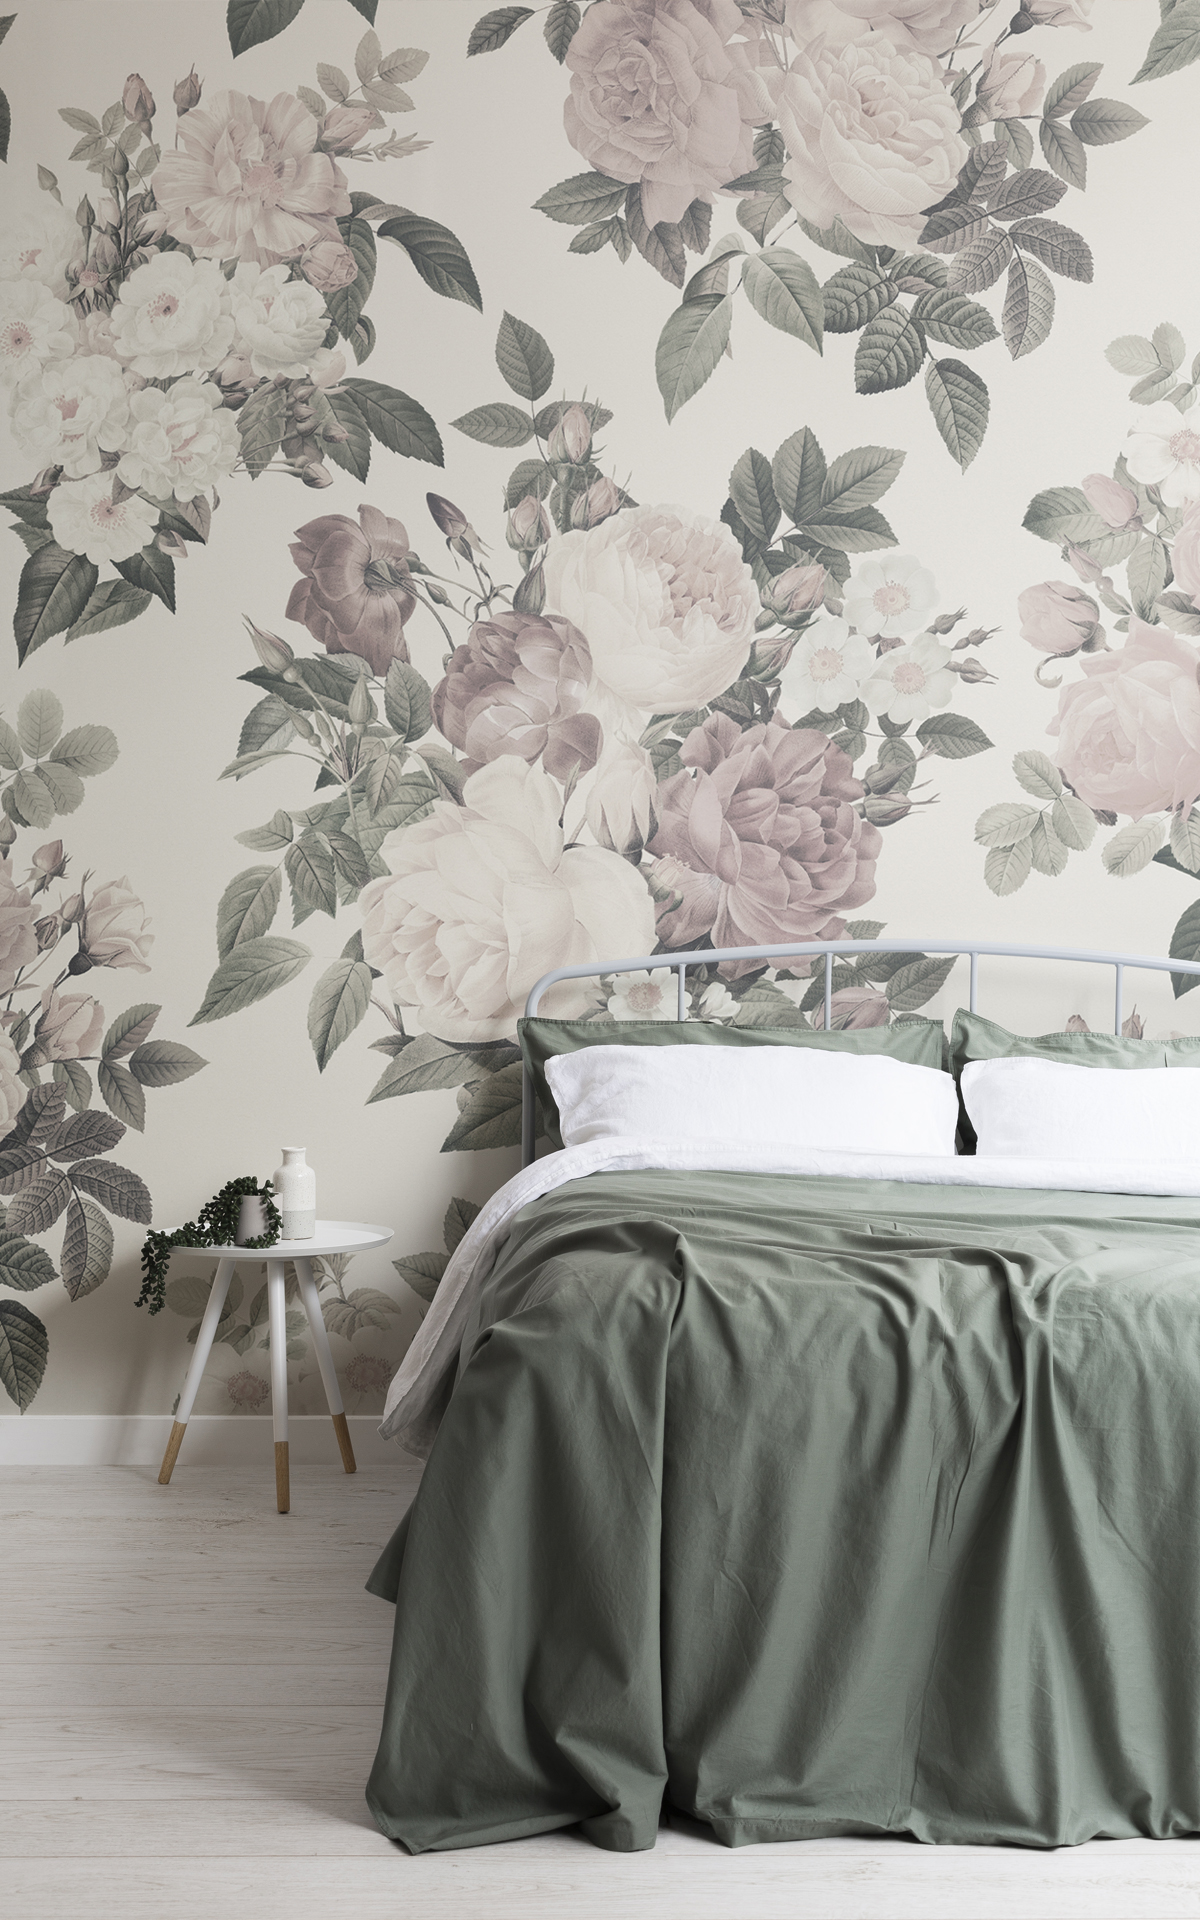 Cream & Pink Rose Vintage Floral Lovely Wallpaper Mural